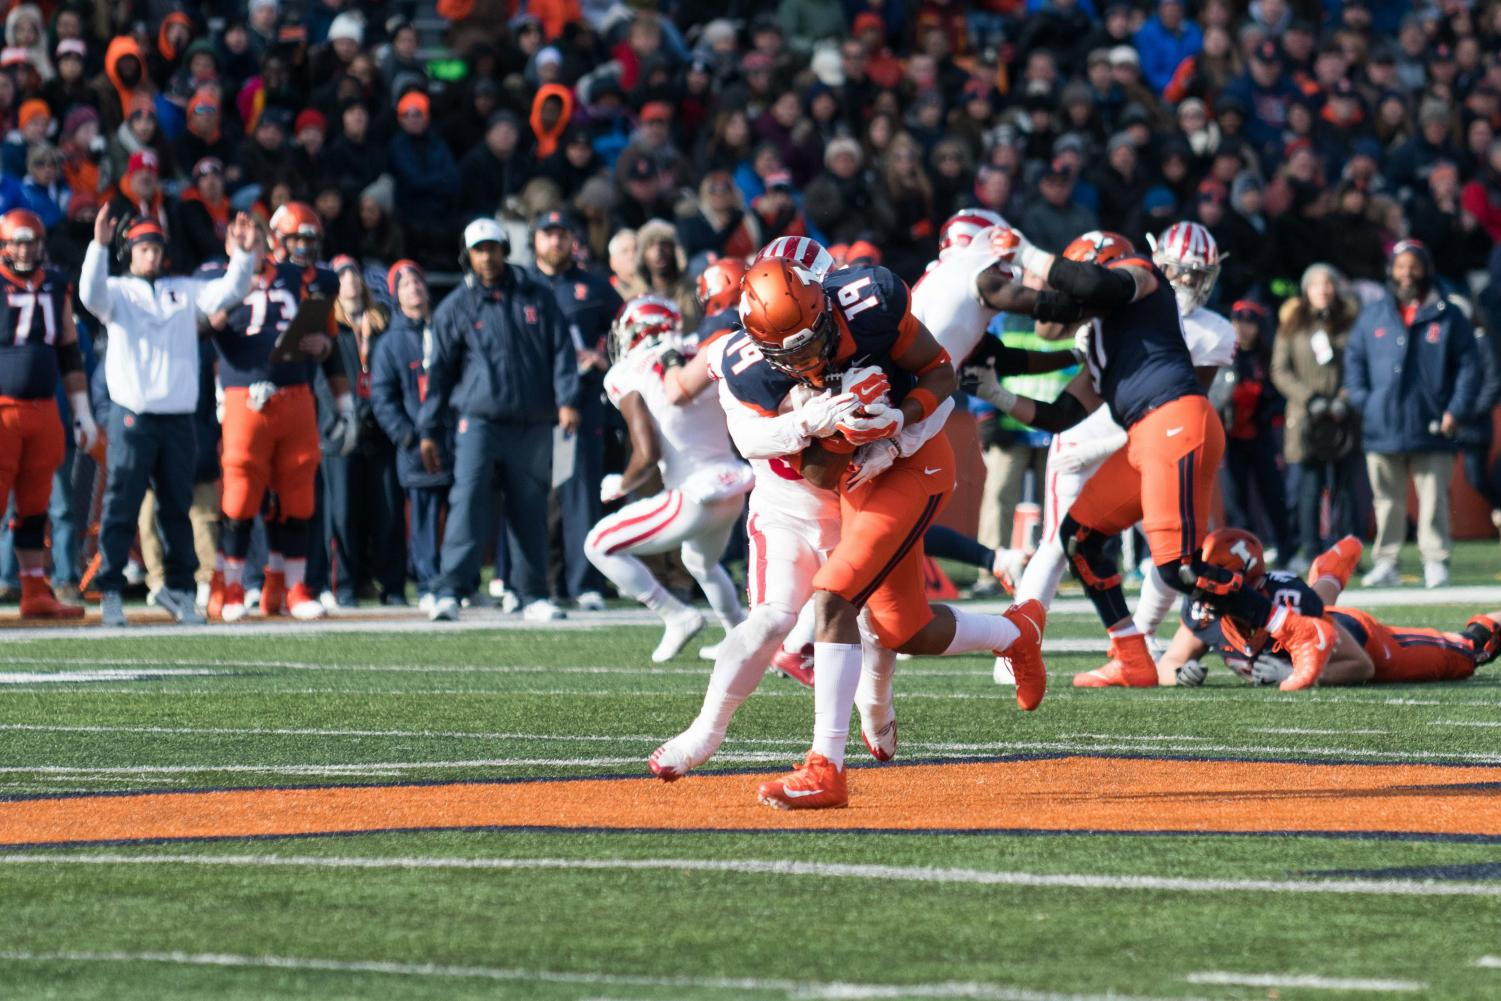 Illinois tight end Louis Dorsey is tackled during the game against Indiana on Nov. 11. The Illini lost 14-24.